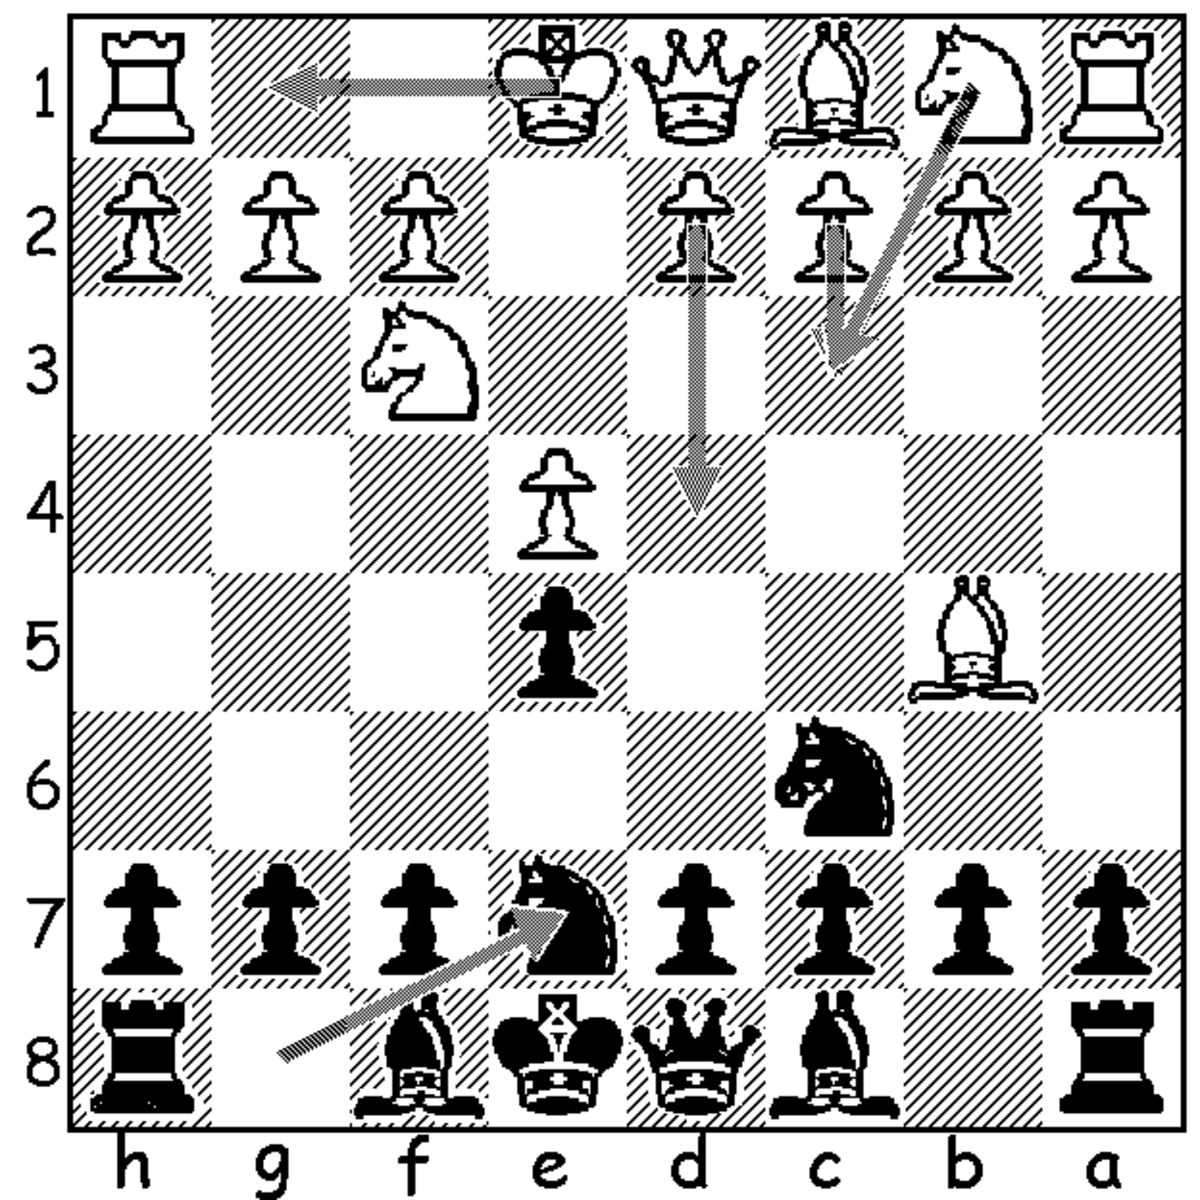 Chess Openings: An Offbeat and Underrated Line in the Ruy Lopez for Black: The Cozio Defense (3...Nge7)